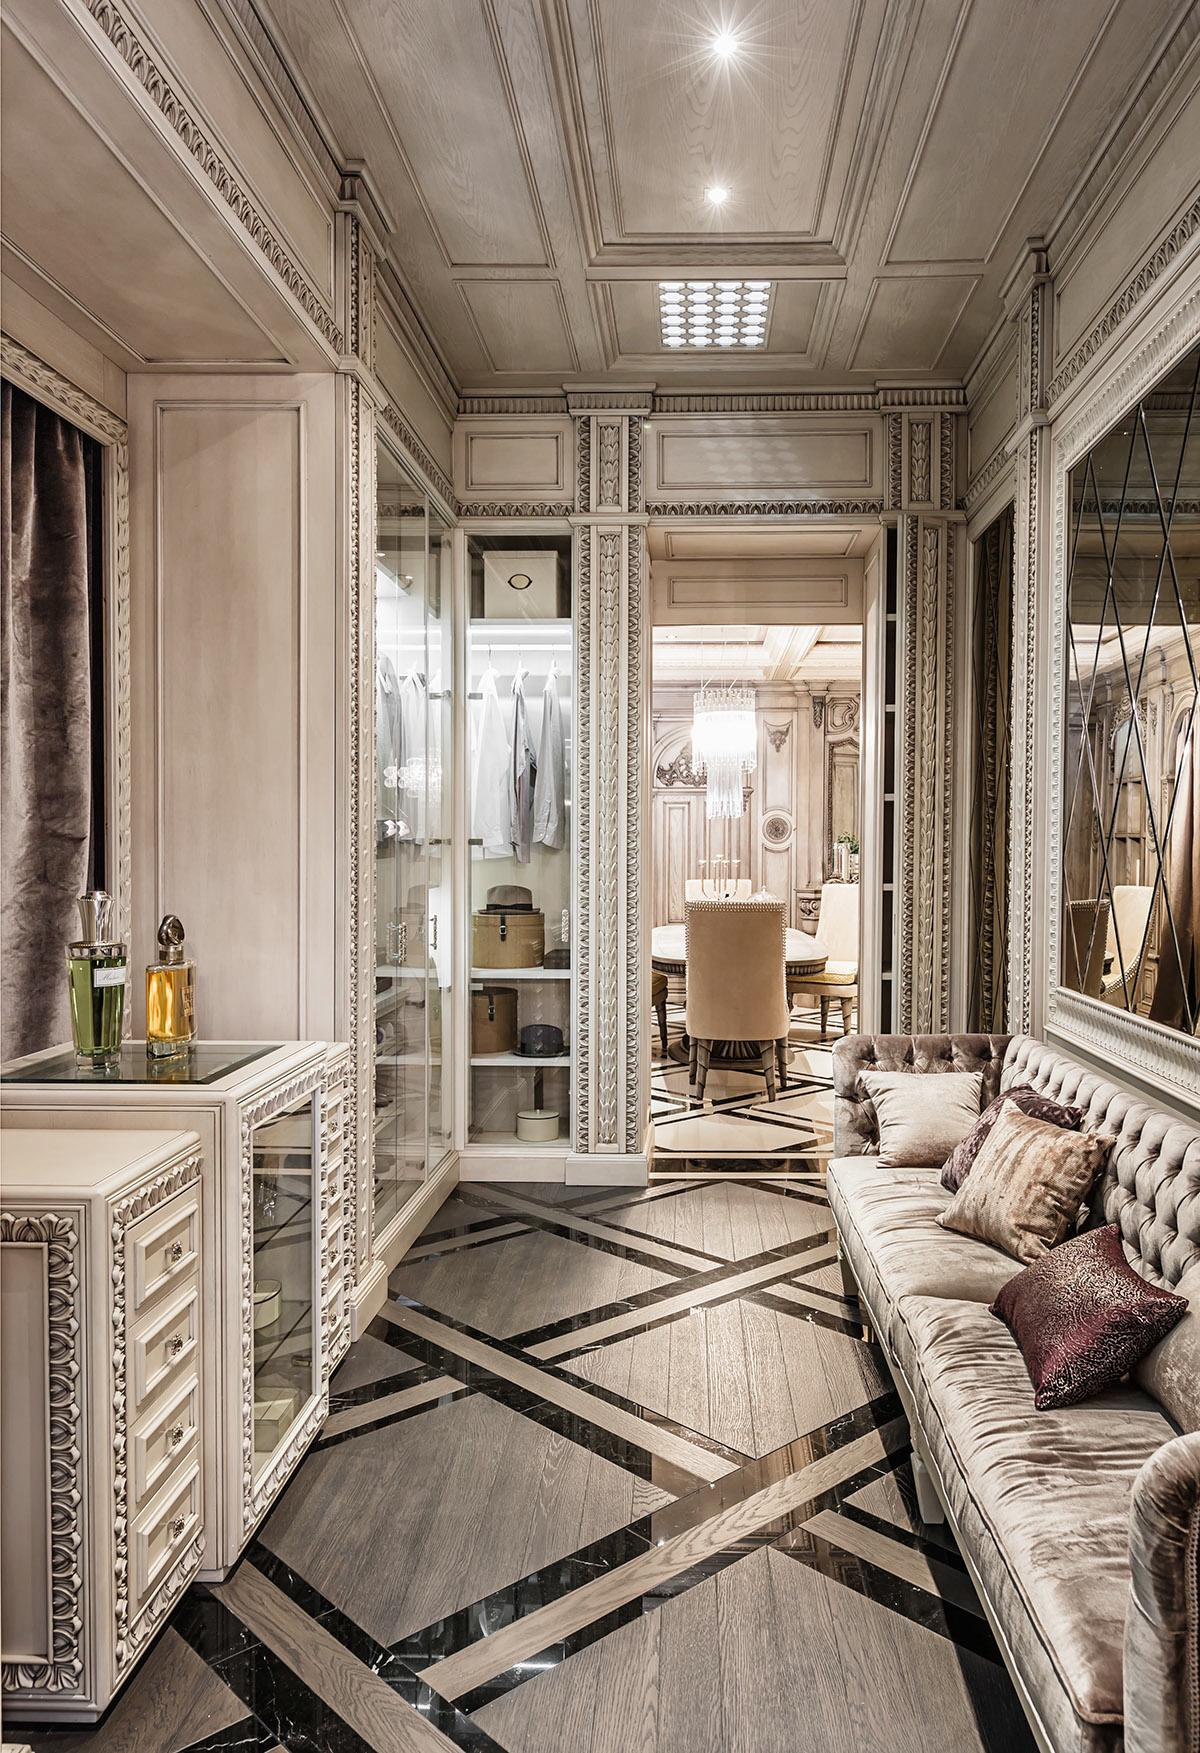 Neoclassical and art deco features in two luxurious interiors Interior houses